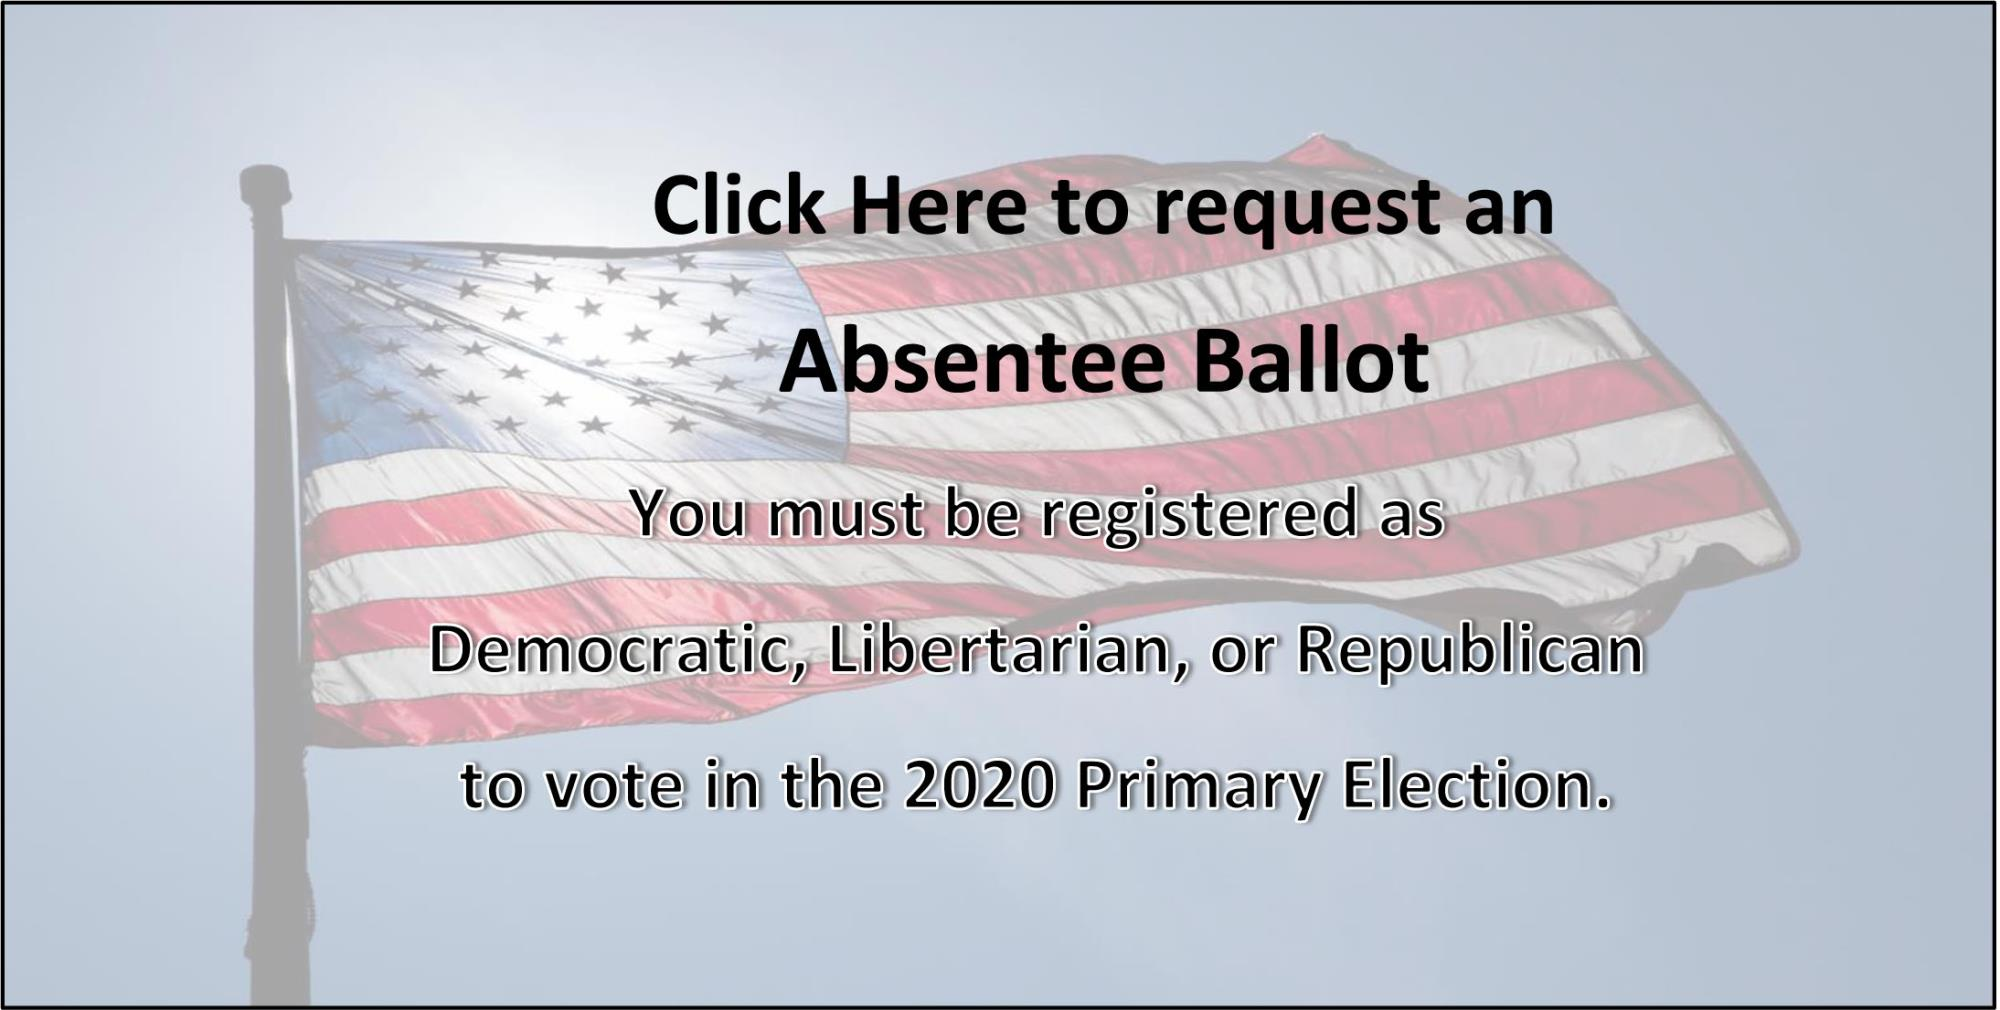 Absentee Ballot requestv2